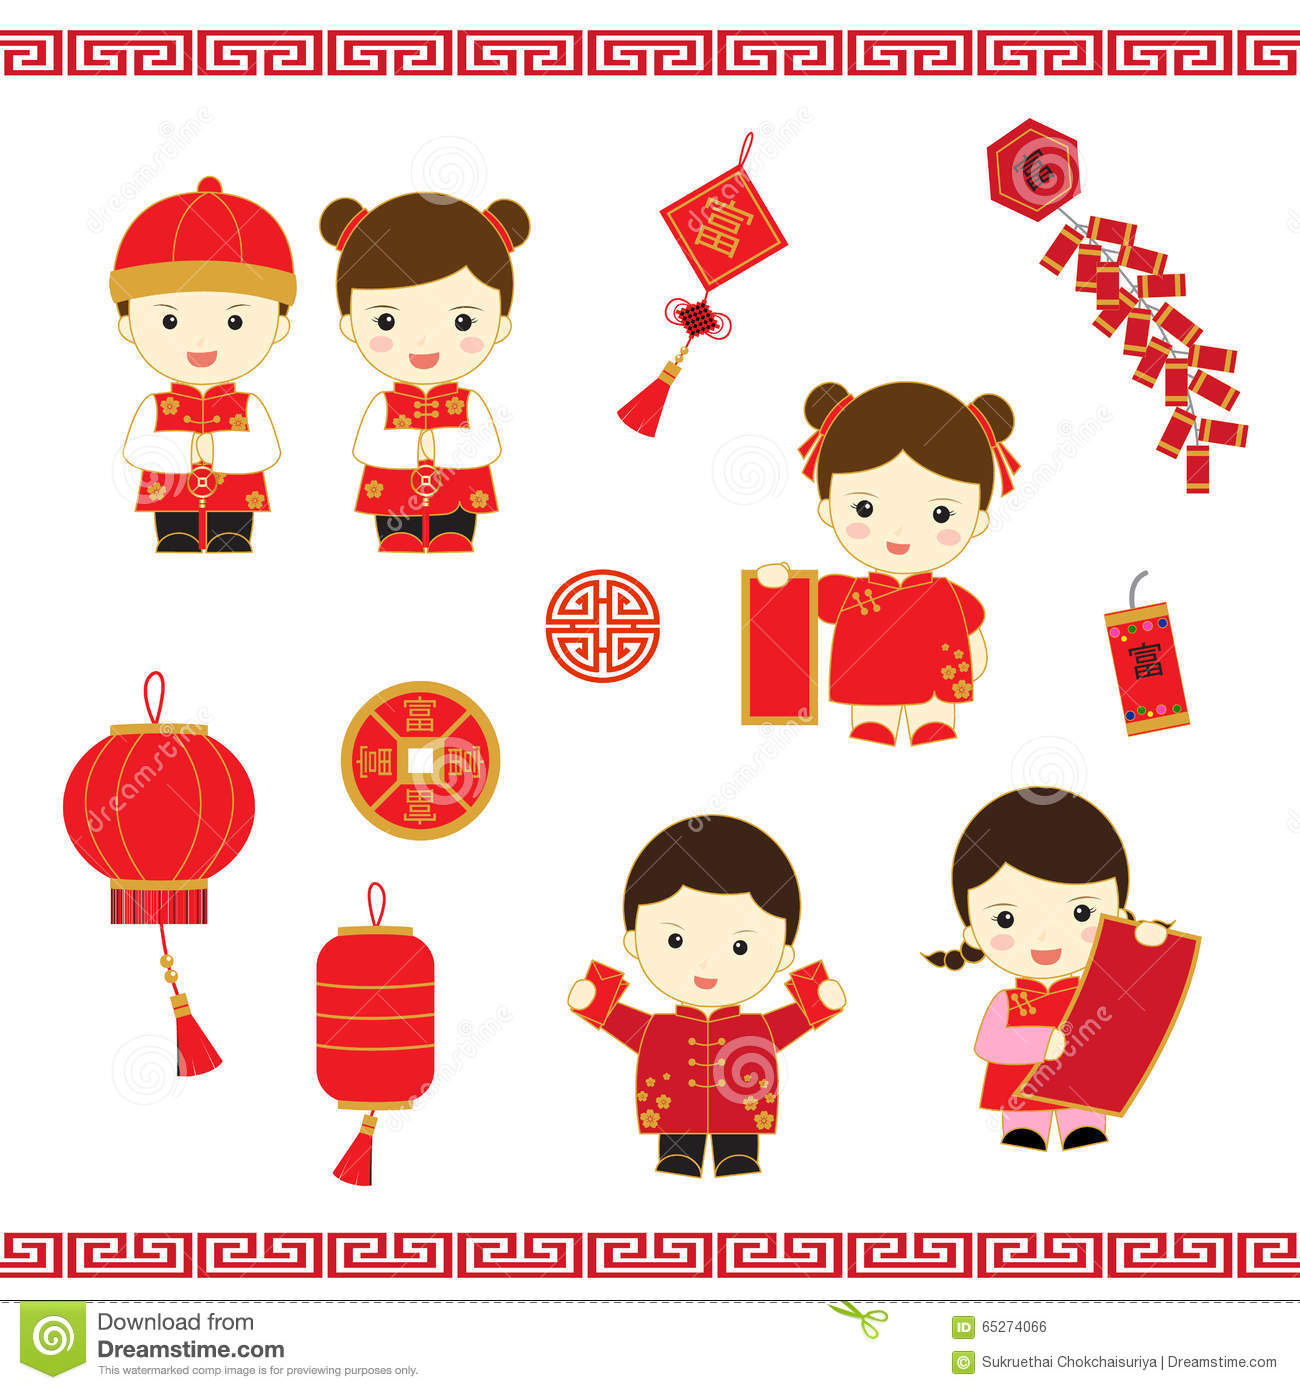 Chinese Calendar Illustration : Chinese new year cartoon stock illustration